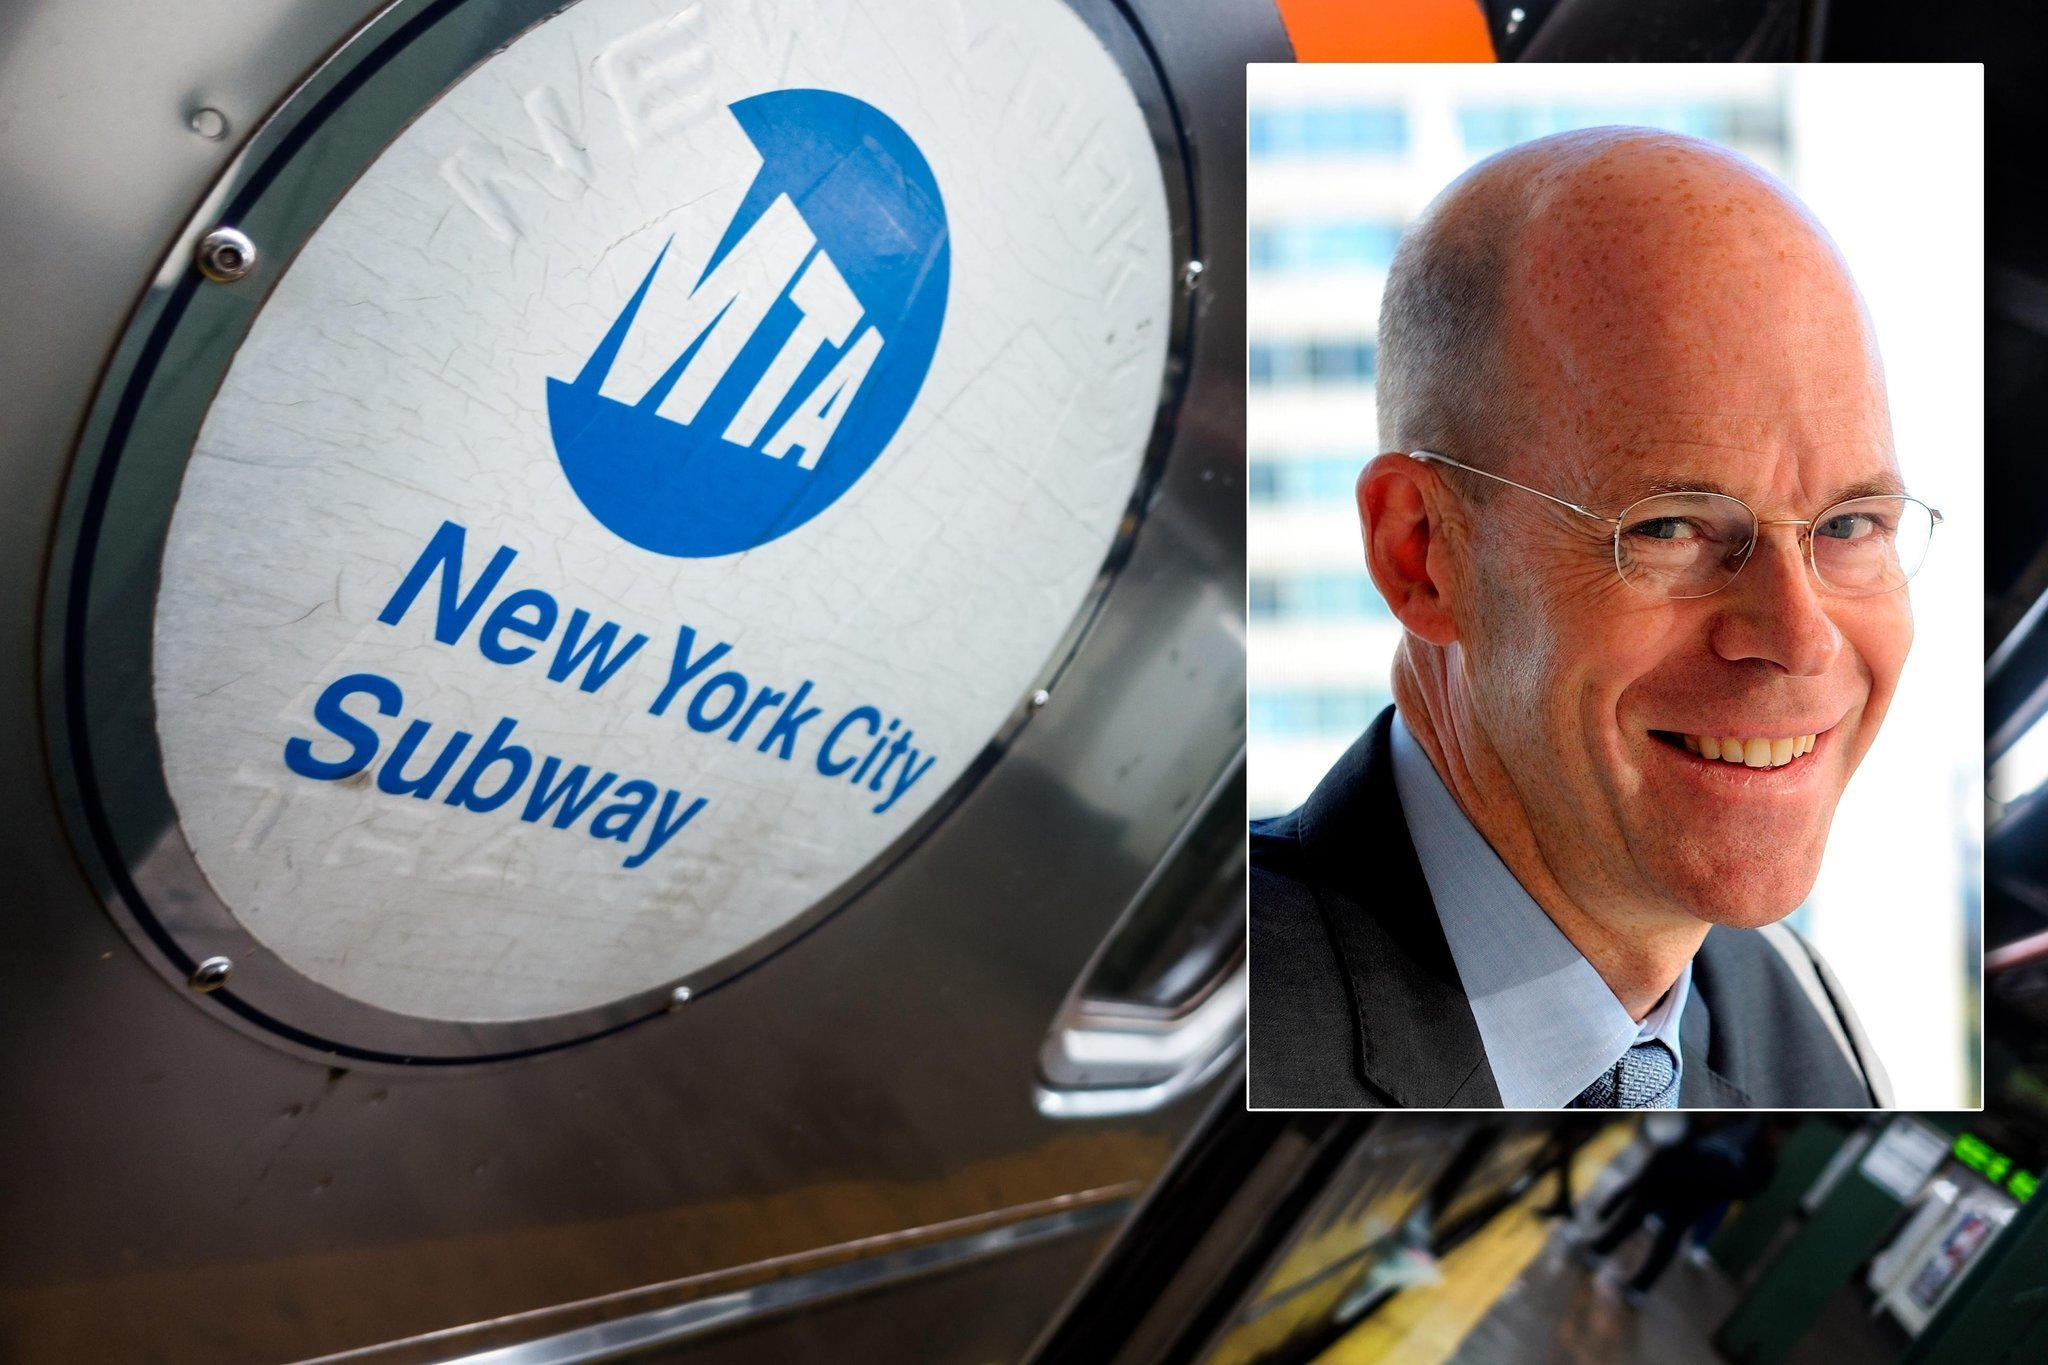 MTA to hire 120 consultants to figure out how to cut 2,700 jobs